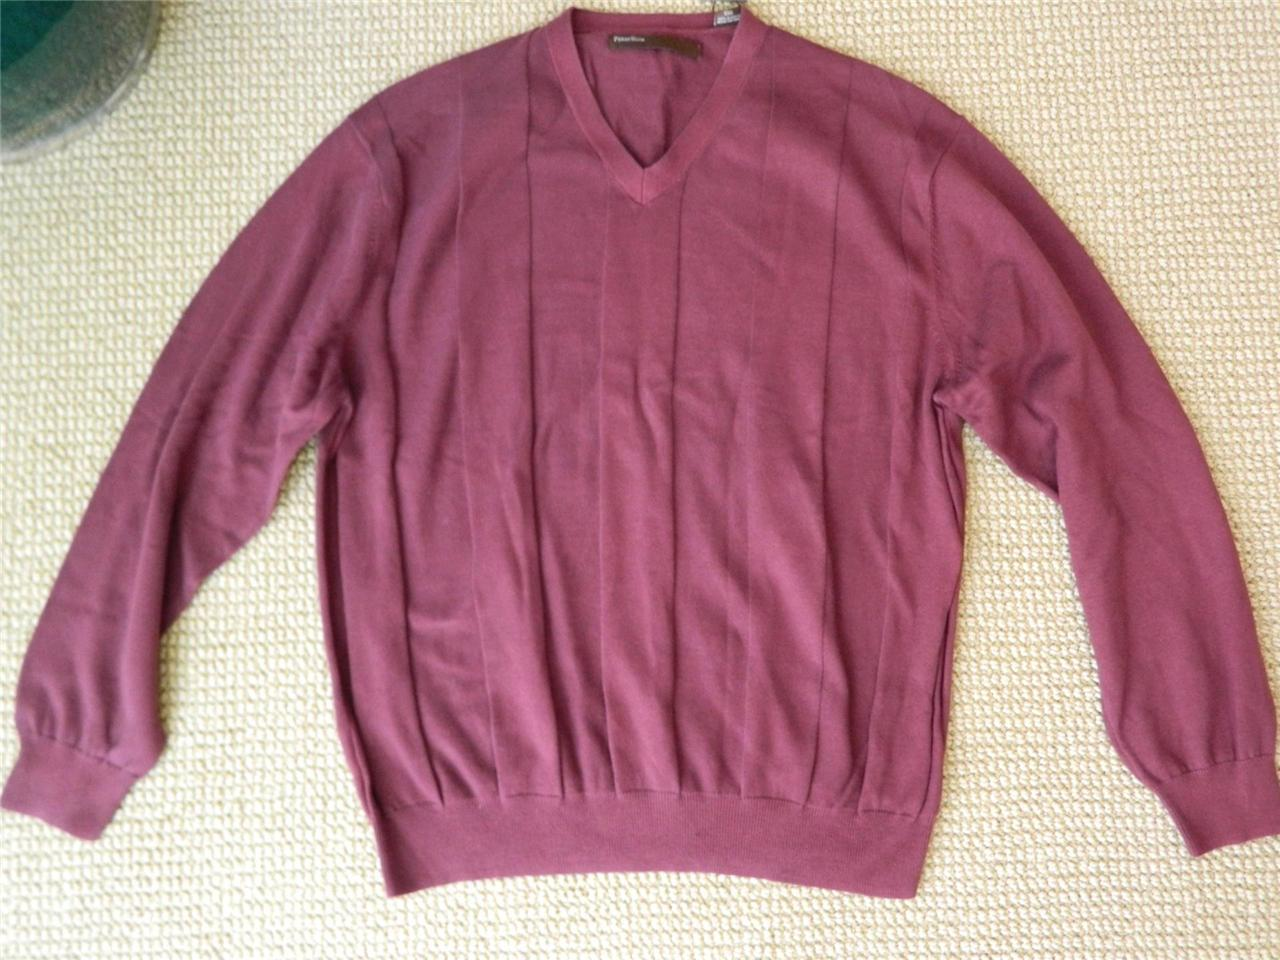 Perry Ellis Sweater Pullover V- neck Cotton Knit  L/S XXL NWT - $22.72